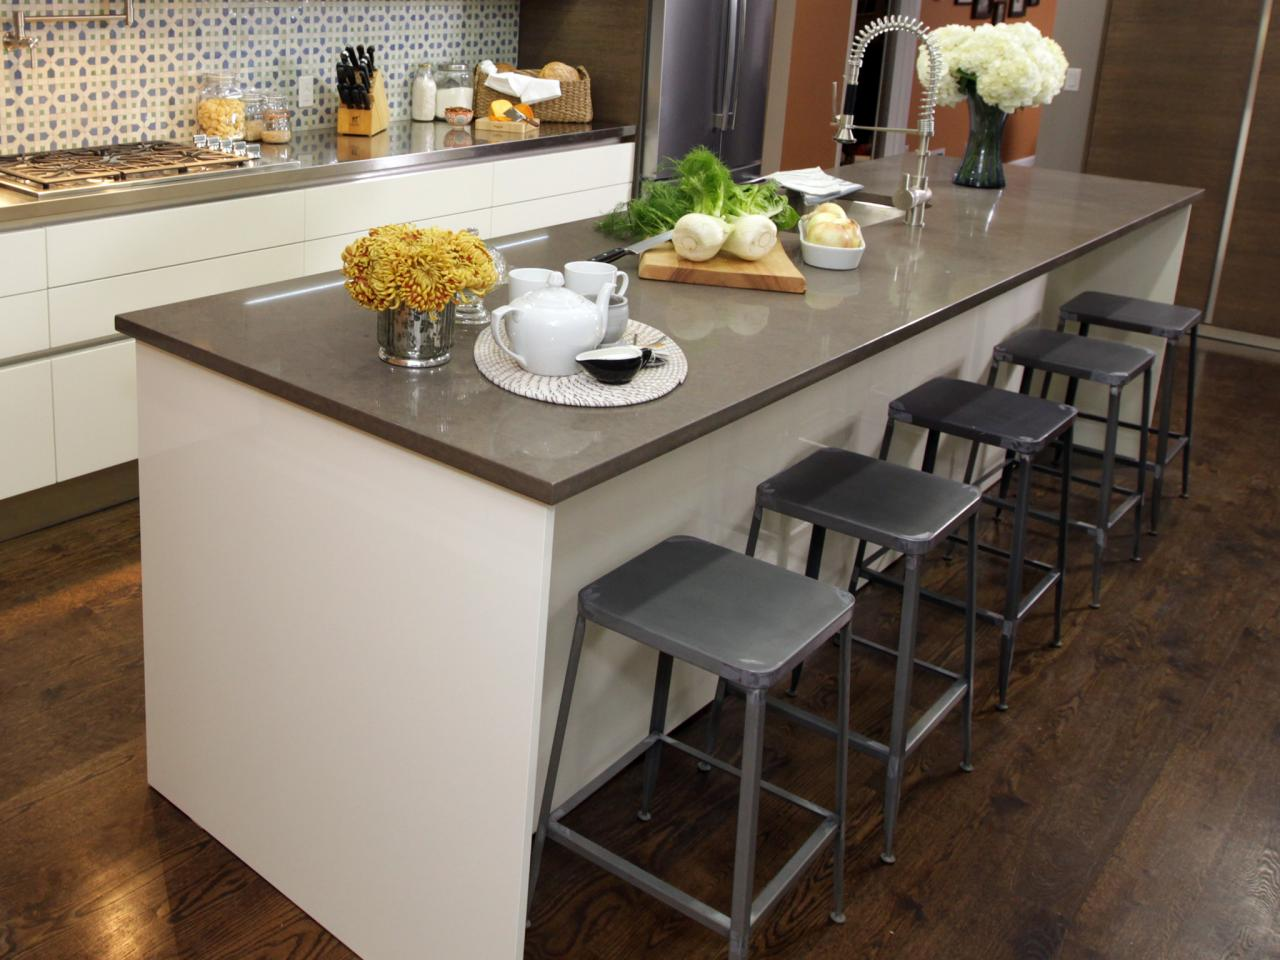 island kitchen stools kitchen island with stools kitchen designs choose kitchen layouts remodeling materials hgtv 7141